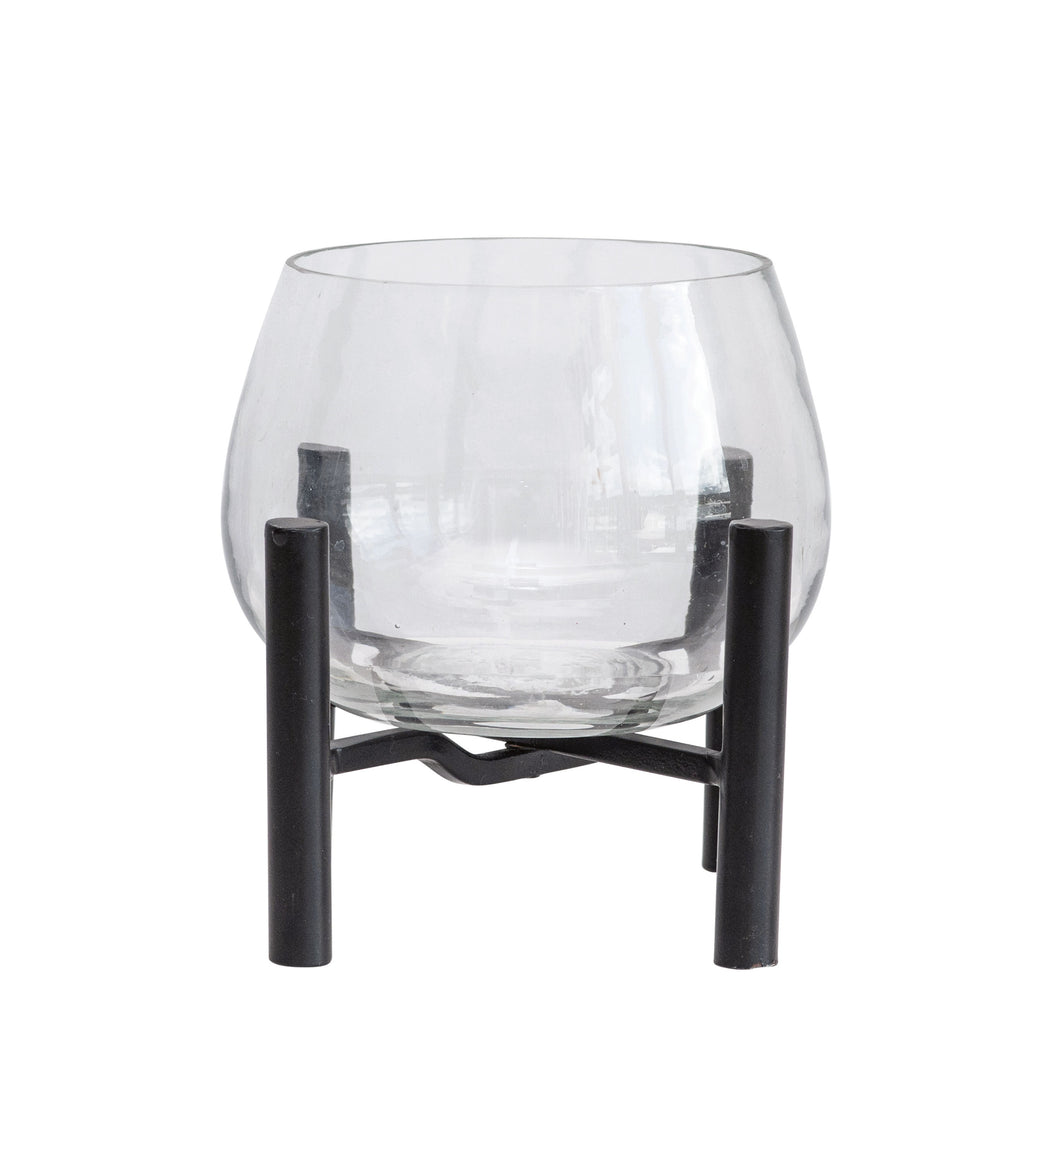 Small Clear Glass Planter on Black Metal Stand (Set of 2 Pieces) - The Rustic Barn CT